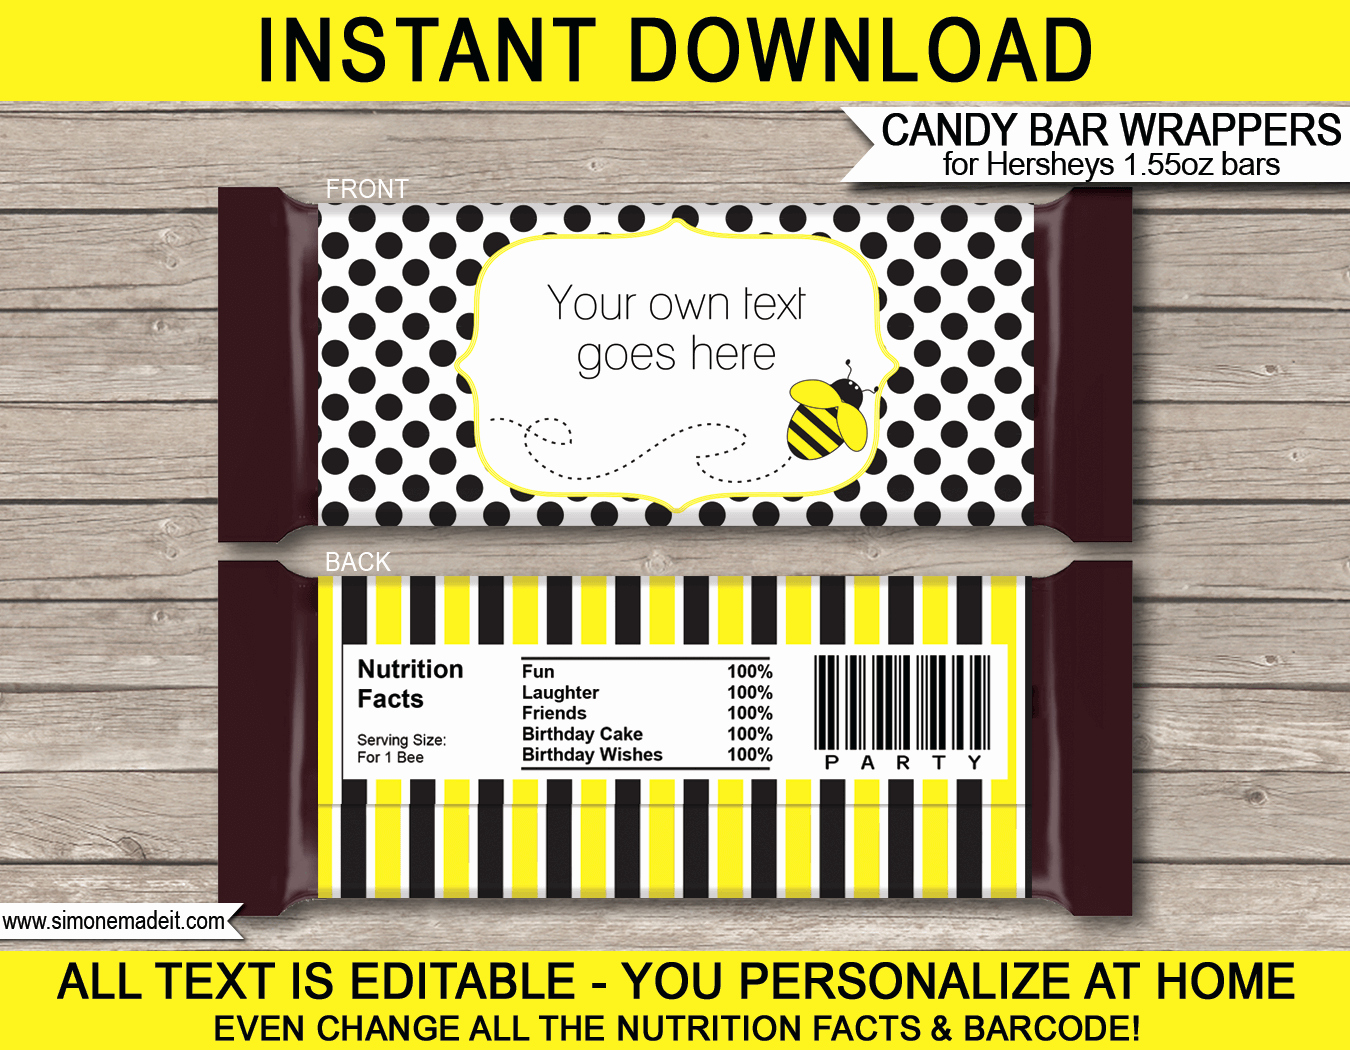 Template for Hershey Bar Wrapper Awesome Bee Hershey Candy Bar Wrappers